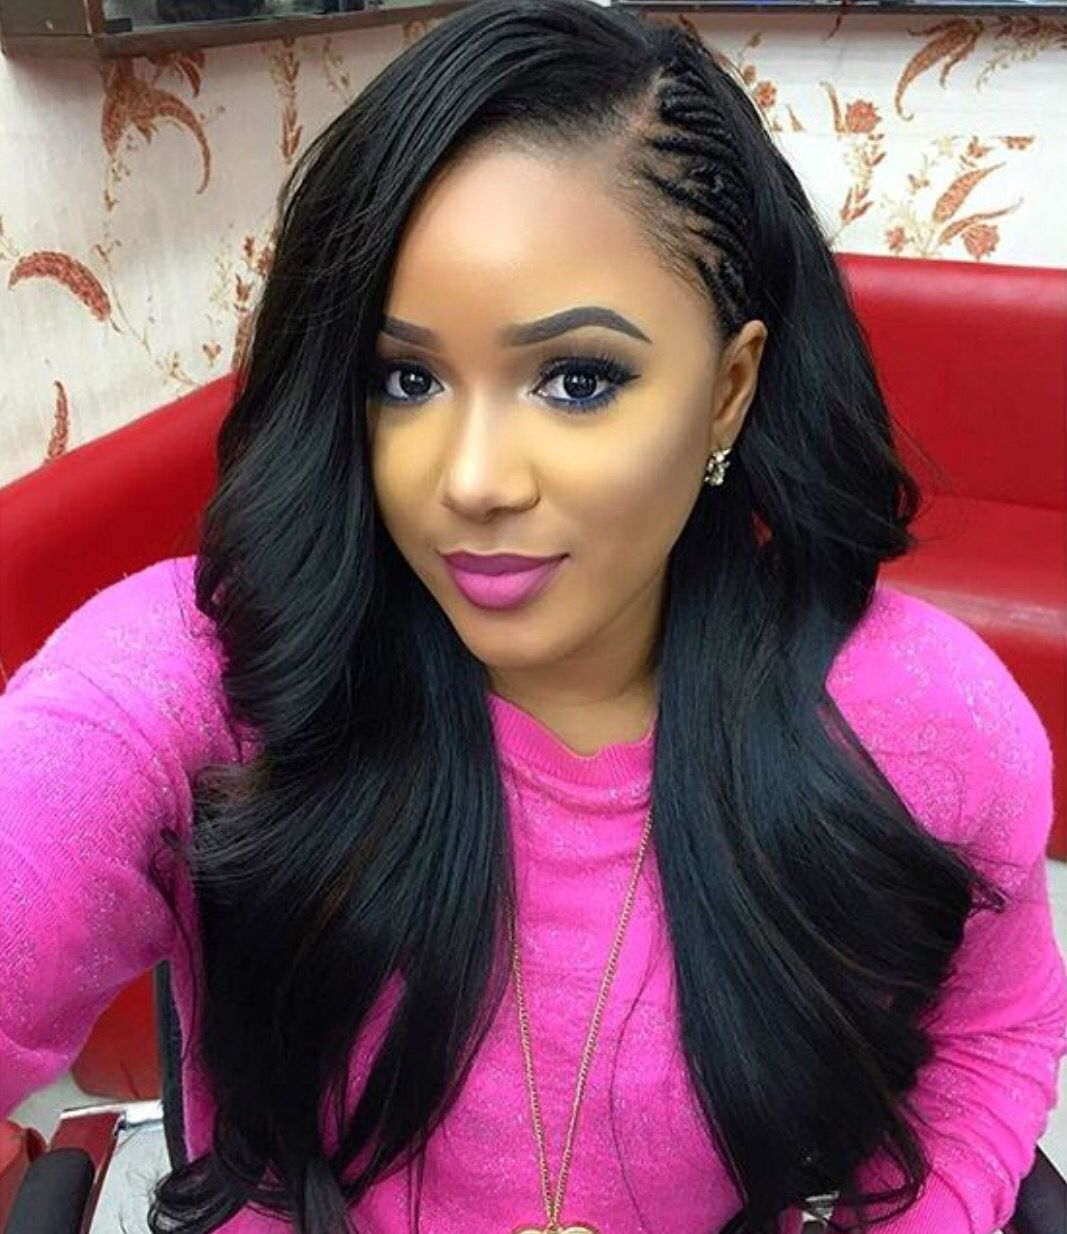 Poersh Human Hair 7a Grade The Best Quality Nice Hair Weft For Lovely Ladies Make Order Online Www Poersh Com Tree Braids Hairstyles Hair Images Gorgeous Hair